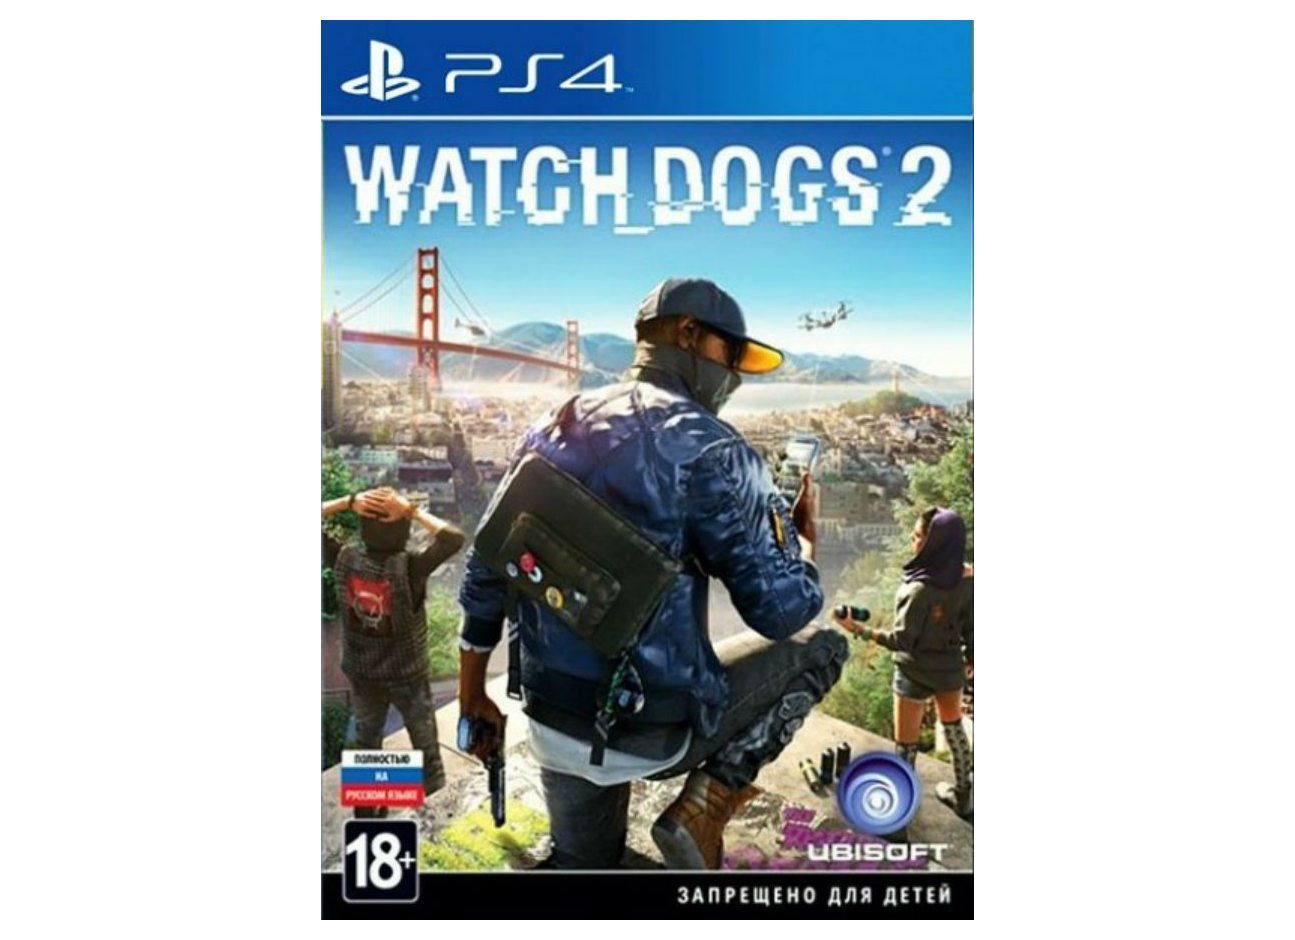 PS 4 Watch Dogs 2 PS 4